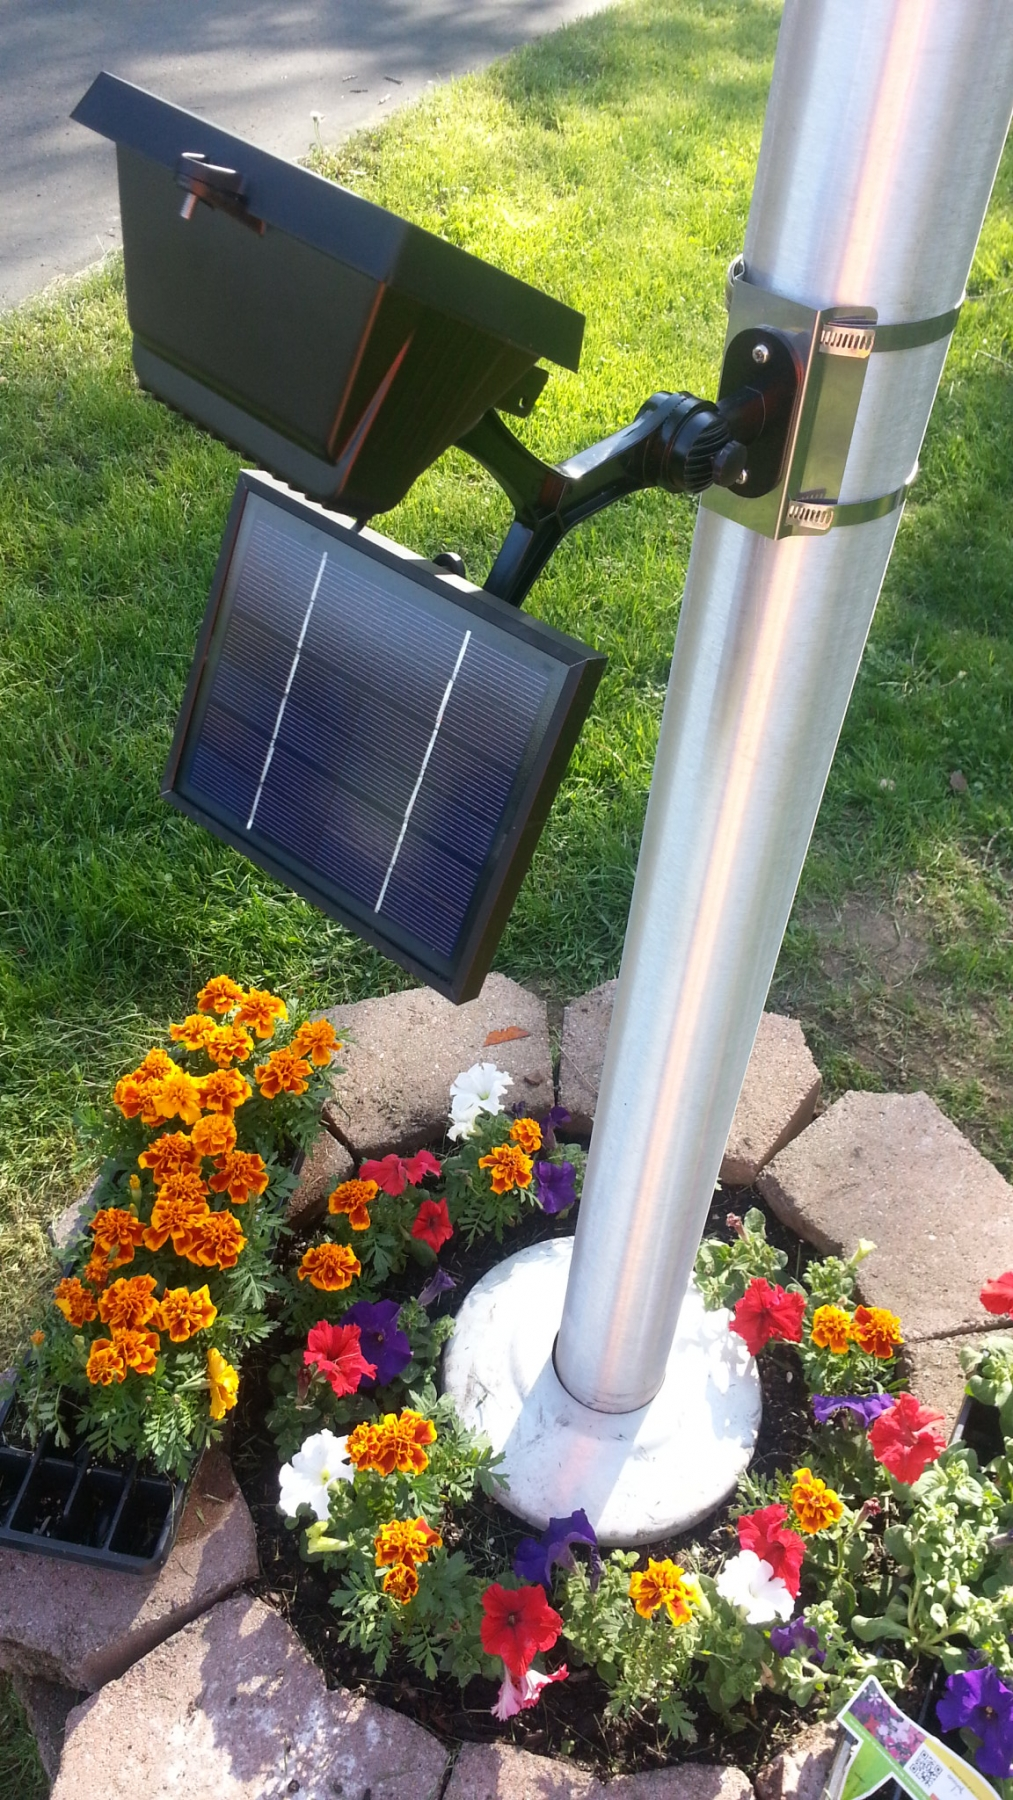 Commercial Solar LED Flagpole Light